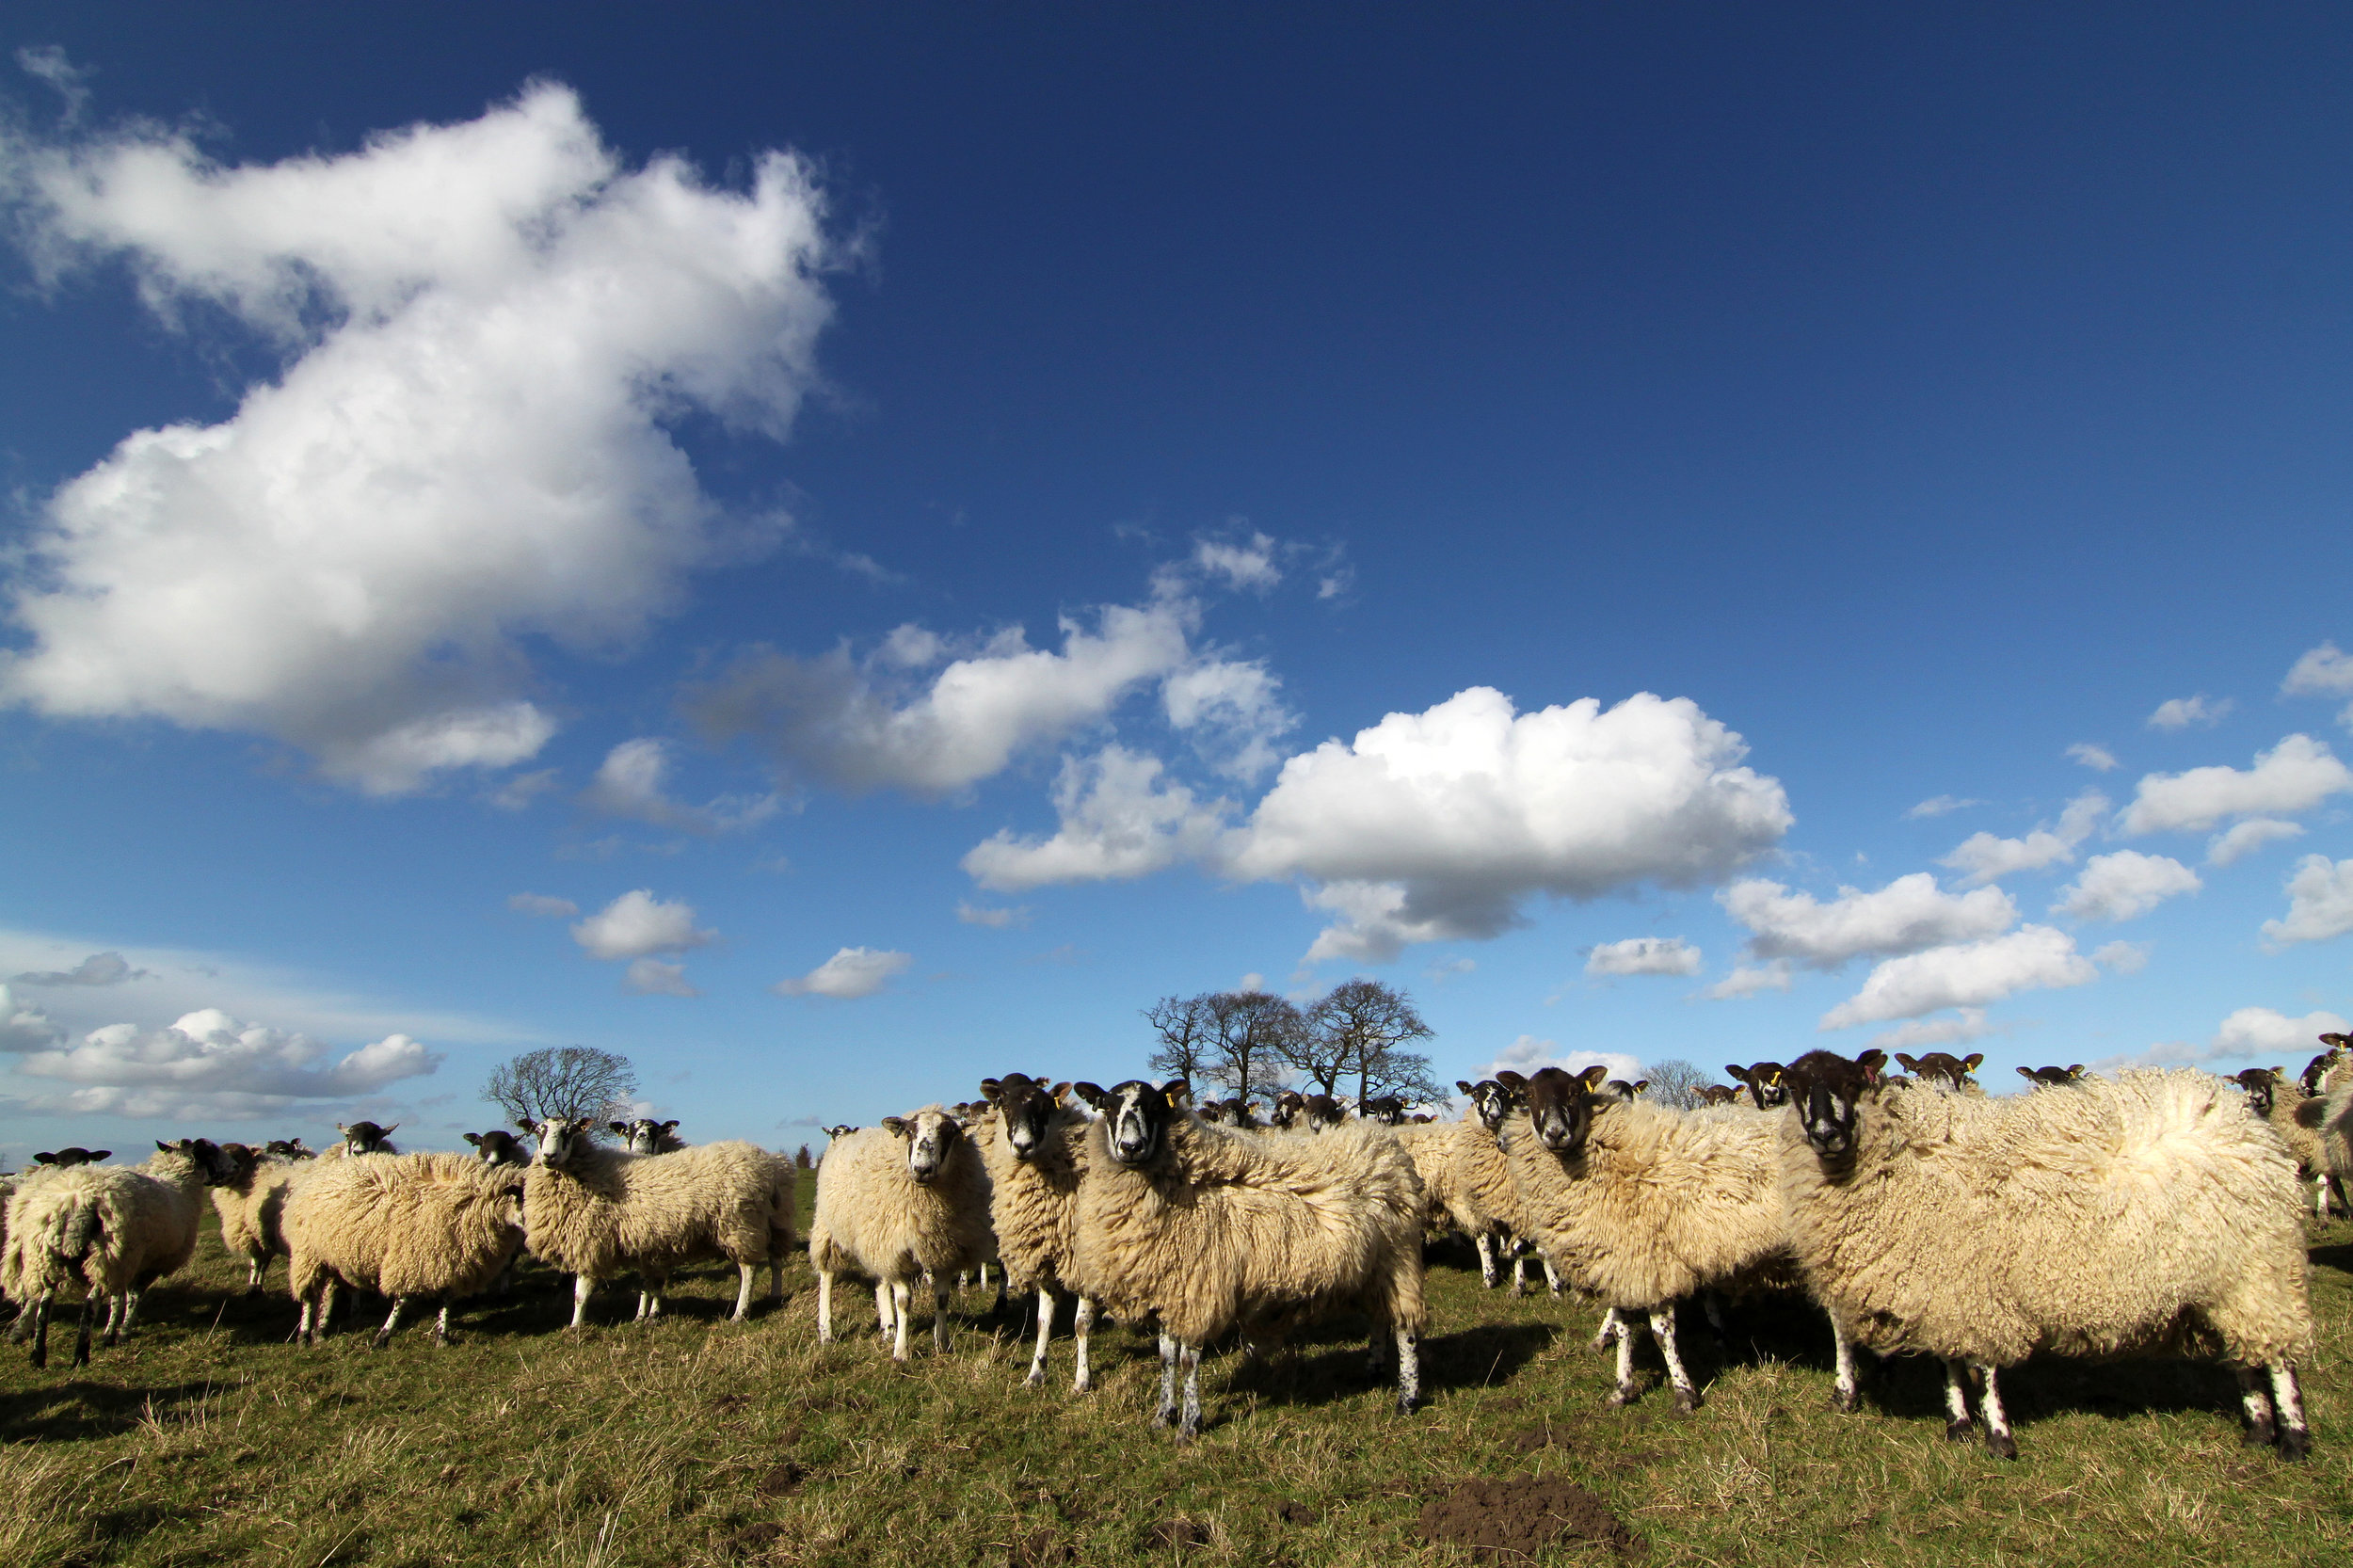 Sheep in the Nettley